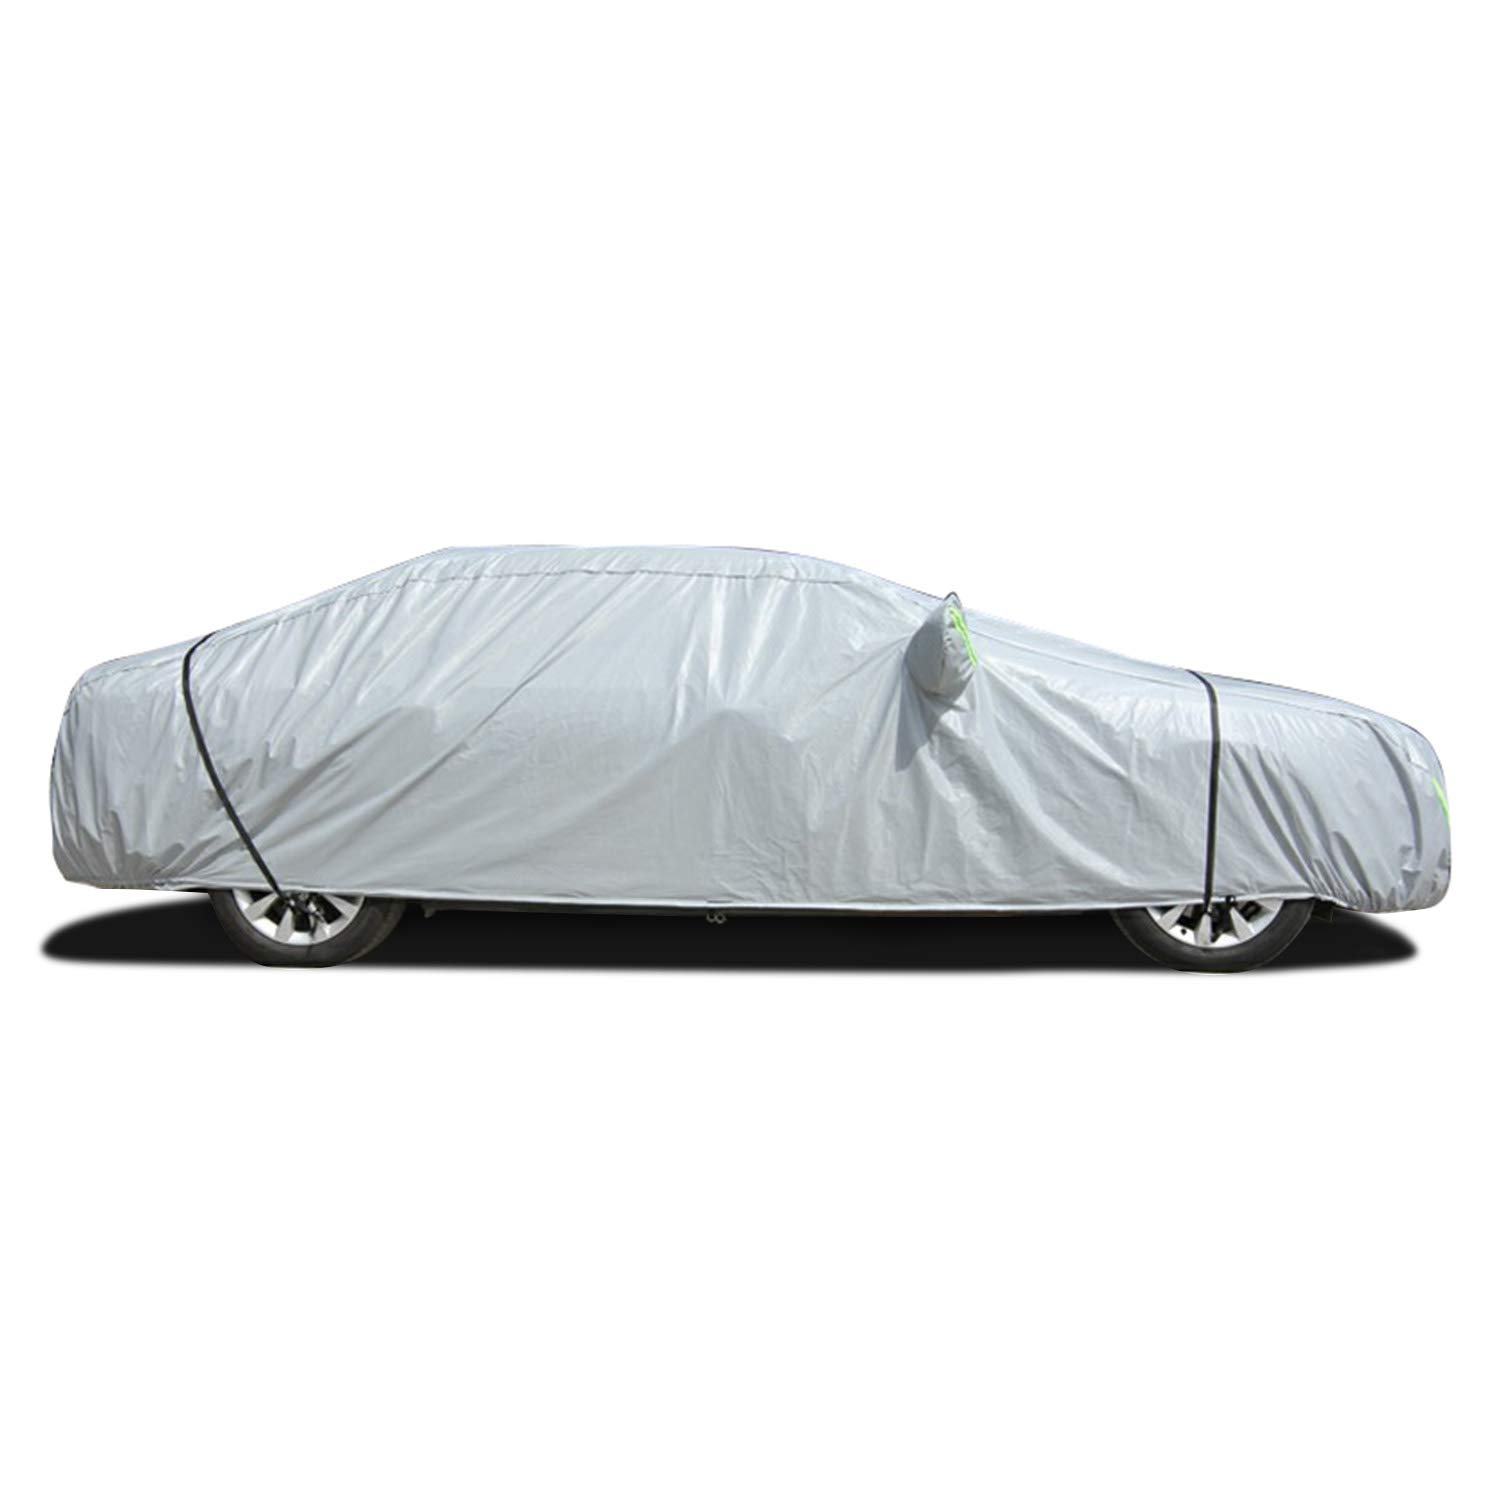 163 L x 67 Wx 59 H Free Windproof Ribbon /& Anti-Theft Lock Car Covers for Sedan Auto Automobiles OOFIT Waterproof Windproof All Weather Cover